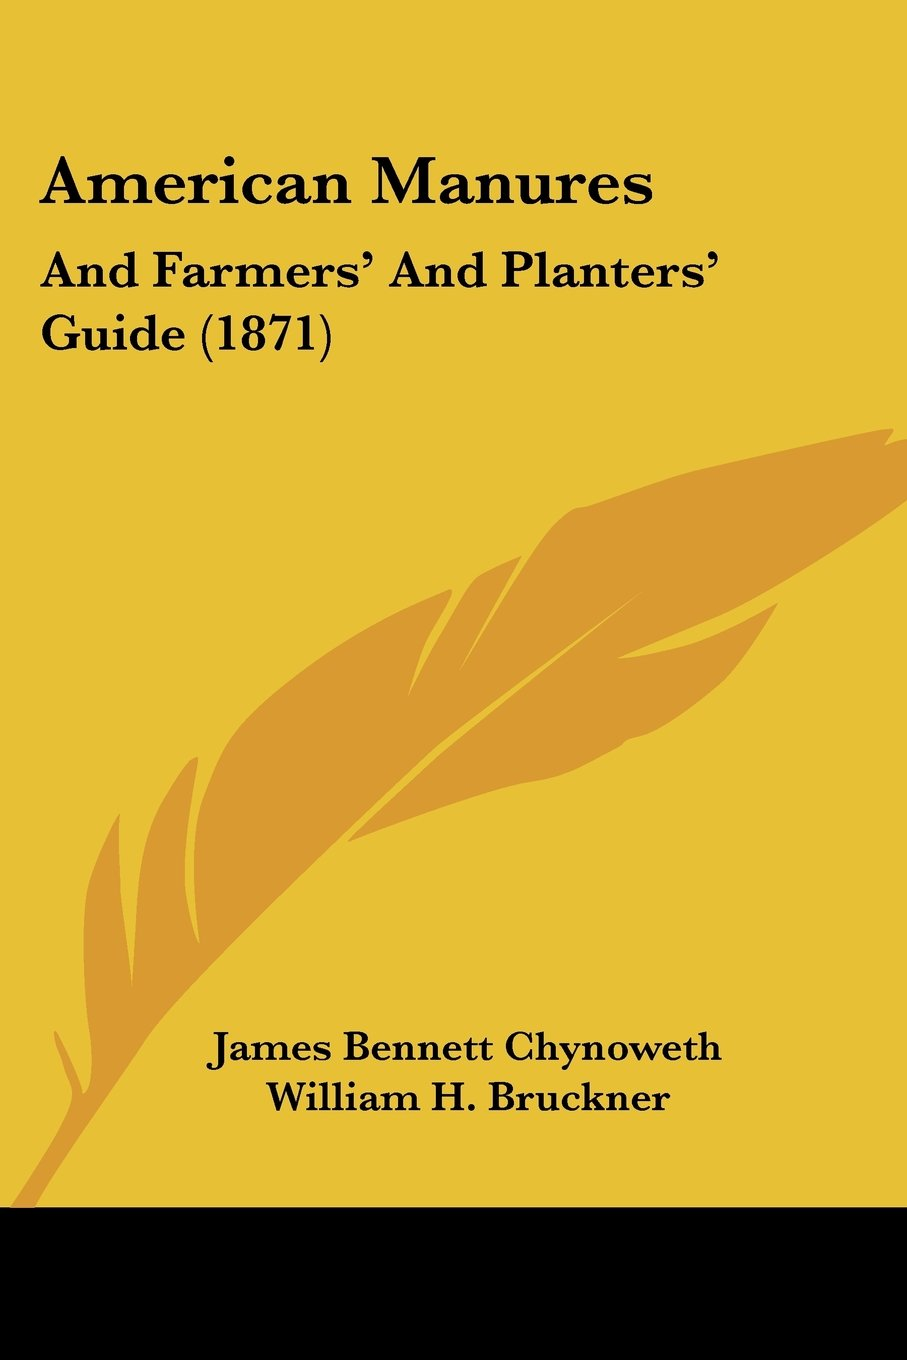 American Manures: And Farmers' And Planters' Guide (1871) PDF